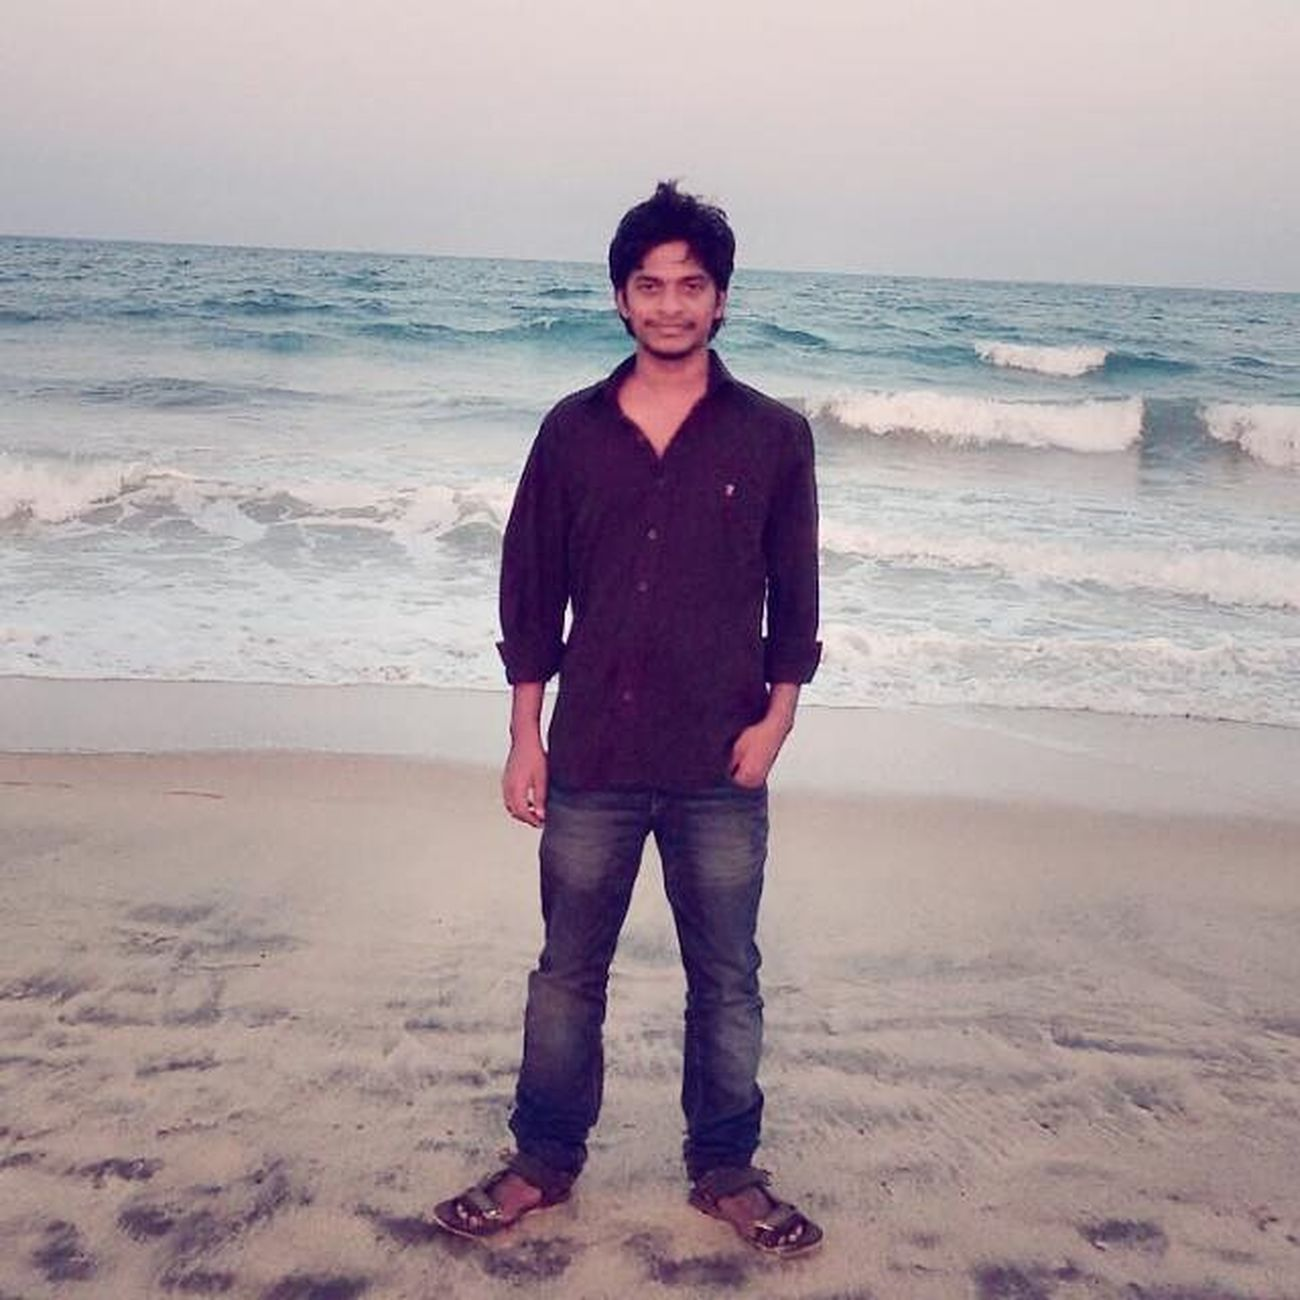 Osum place😘 Beach Silverbeach Cuddalore Cuddalorebeach Black Sea Jean Shore Bayofbengal